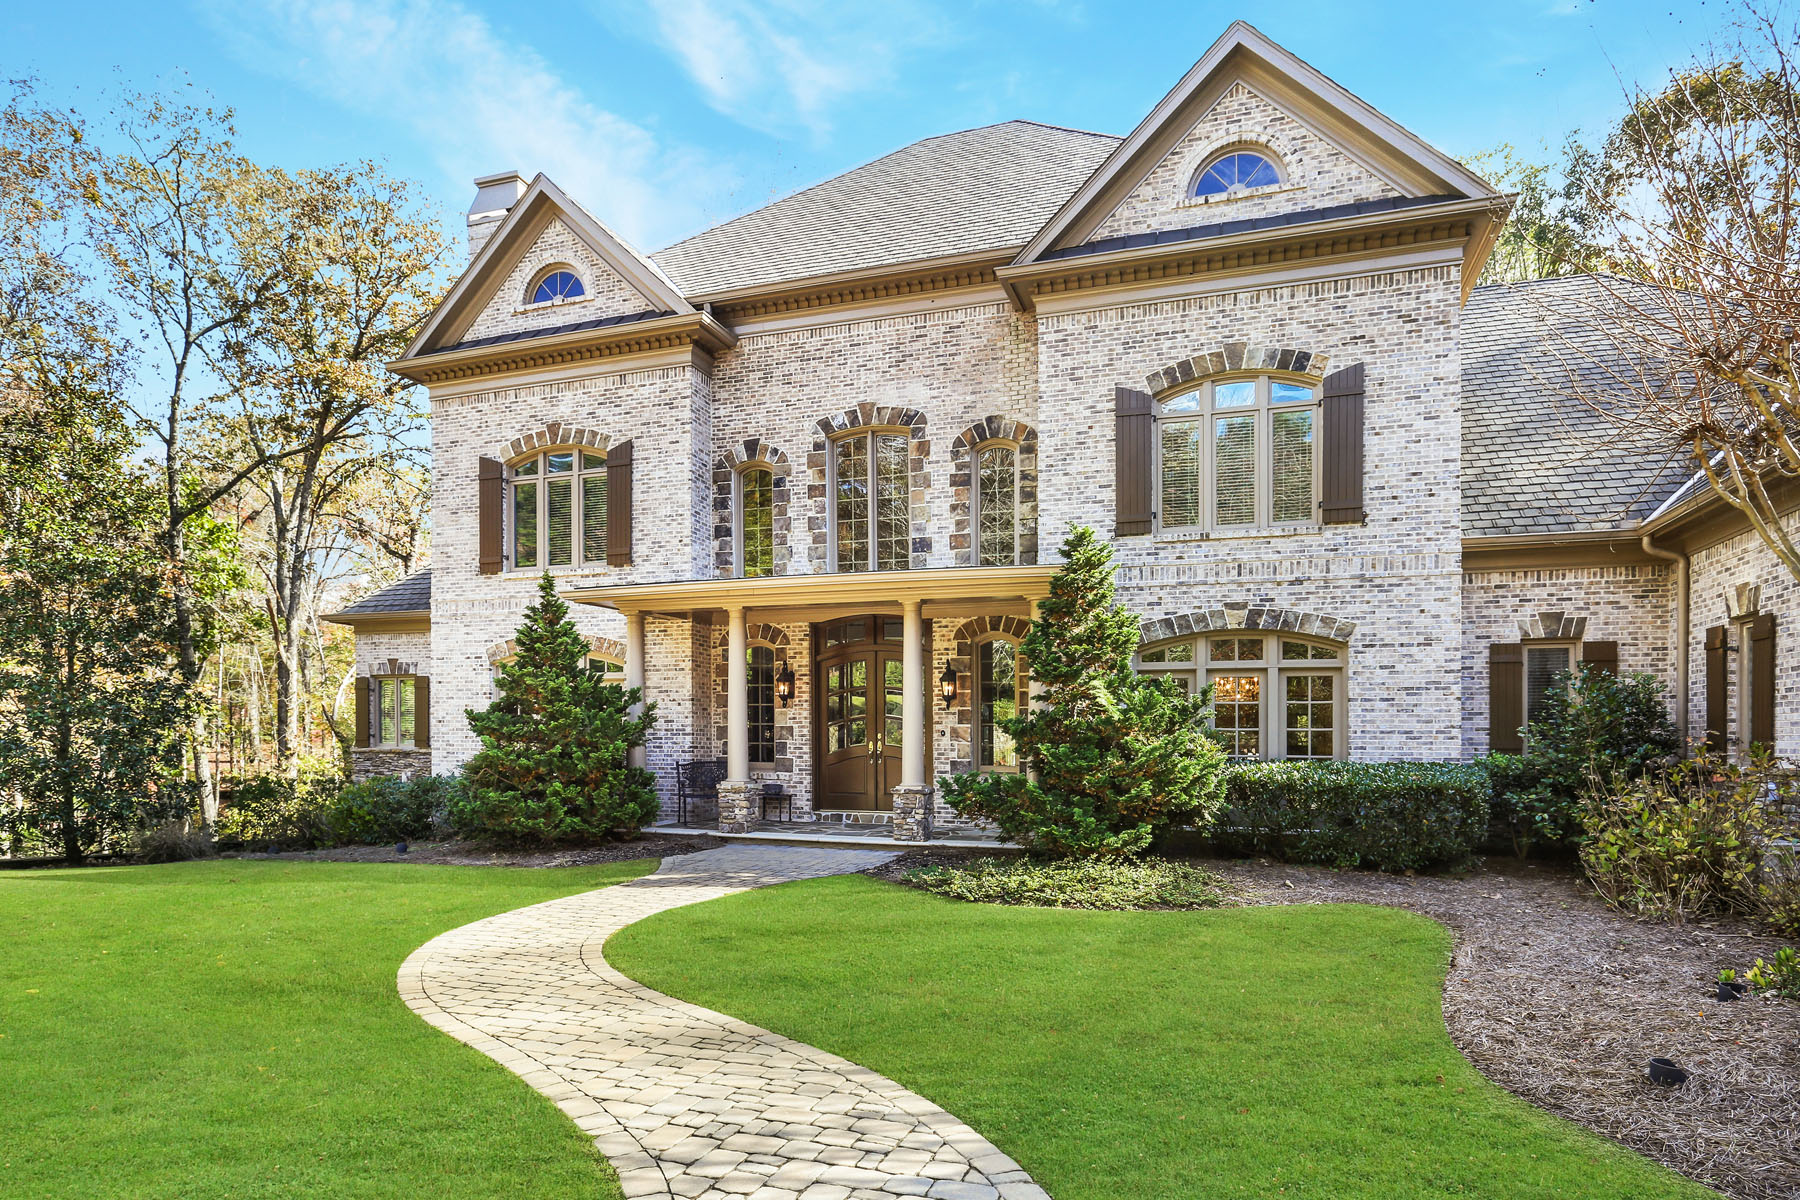 Single Family Homes for Sale at Exceptional Brick And Stone Estate Home In Country Club Of The South 1000 Downing Street Johns Creek, Georgia 30022 United States